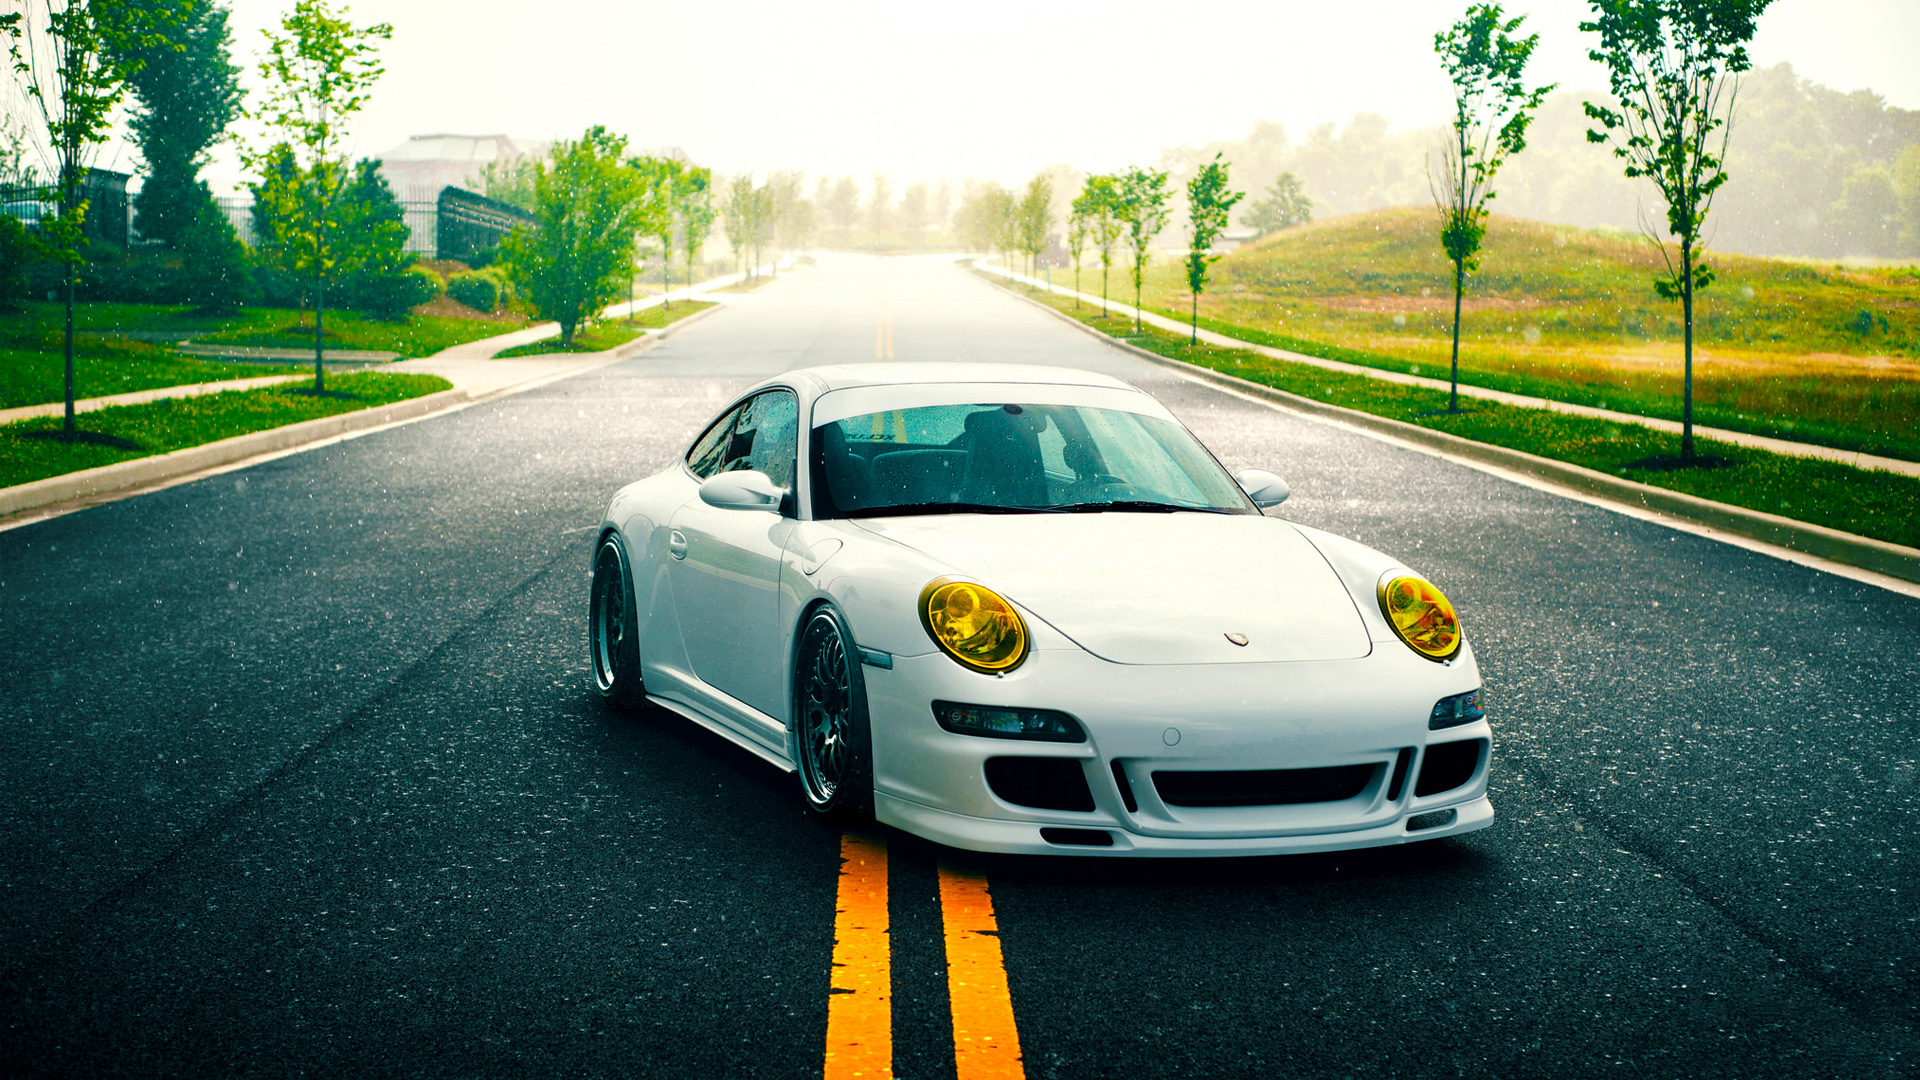 porsche 911 gt3 white wallpaper | hd car wallpapers | id #5873